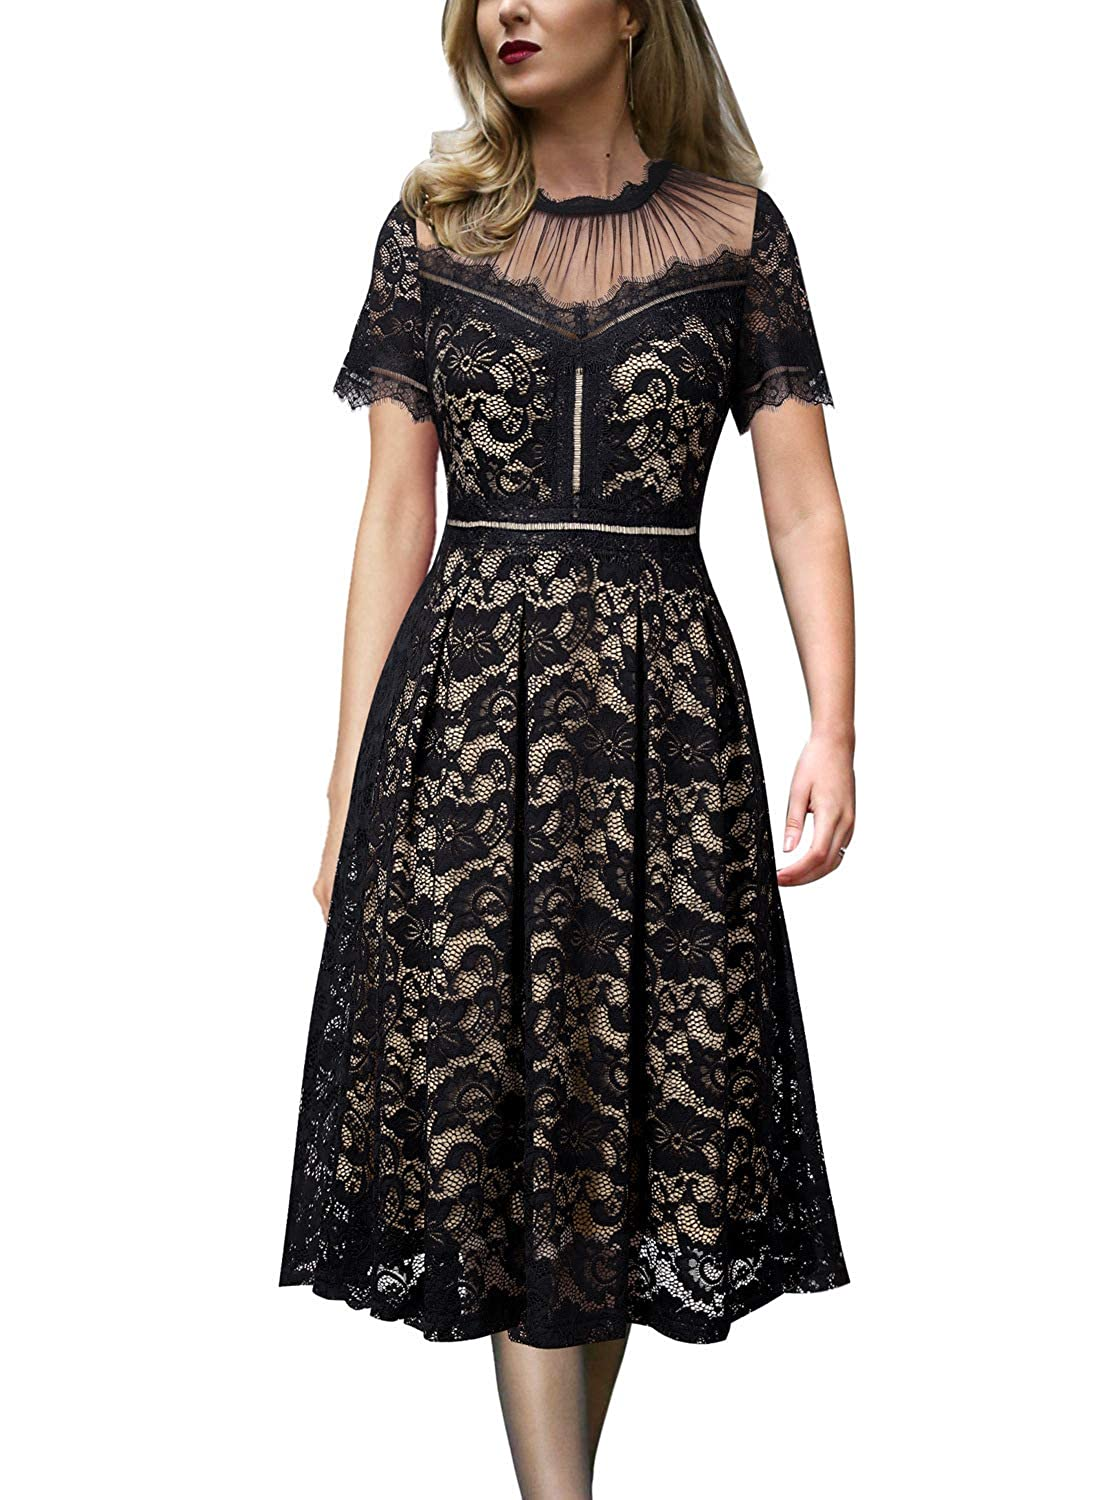 ee970da263d2 VFSHOW Womens Floral Lace Pleated Cocktail Wedding Party A-Line Midi Dress  at Amazon Women's Clothing store: